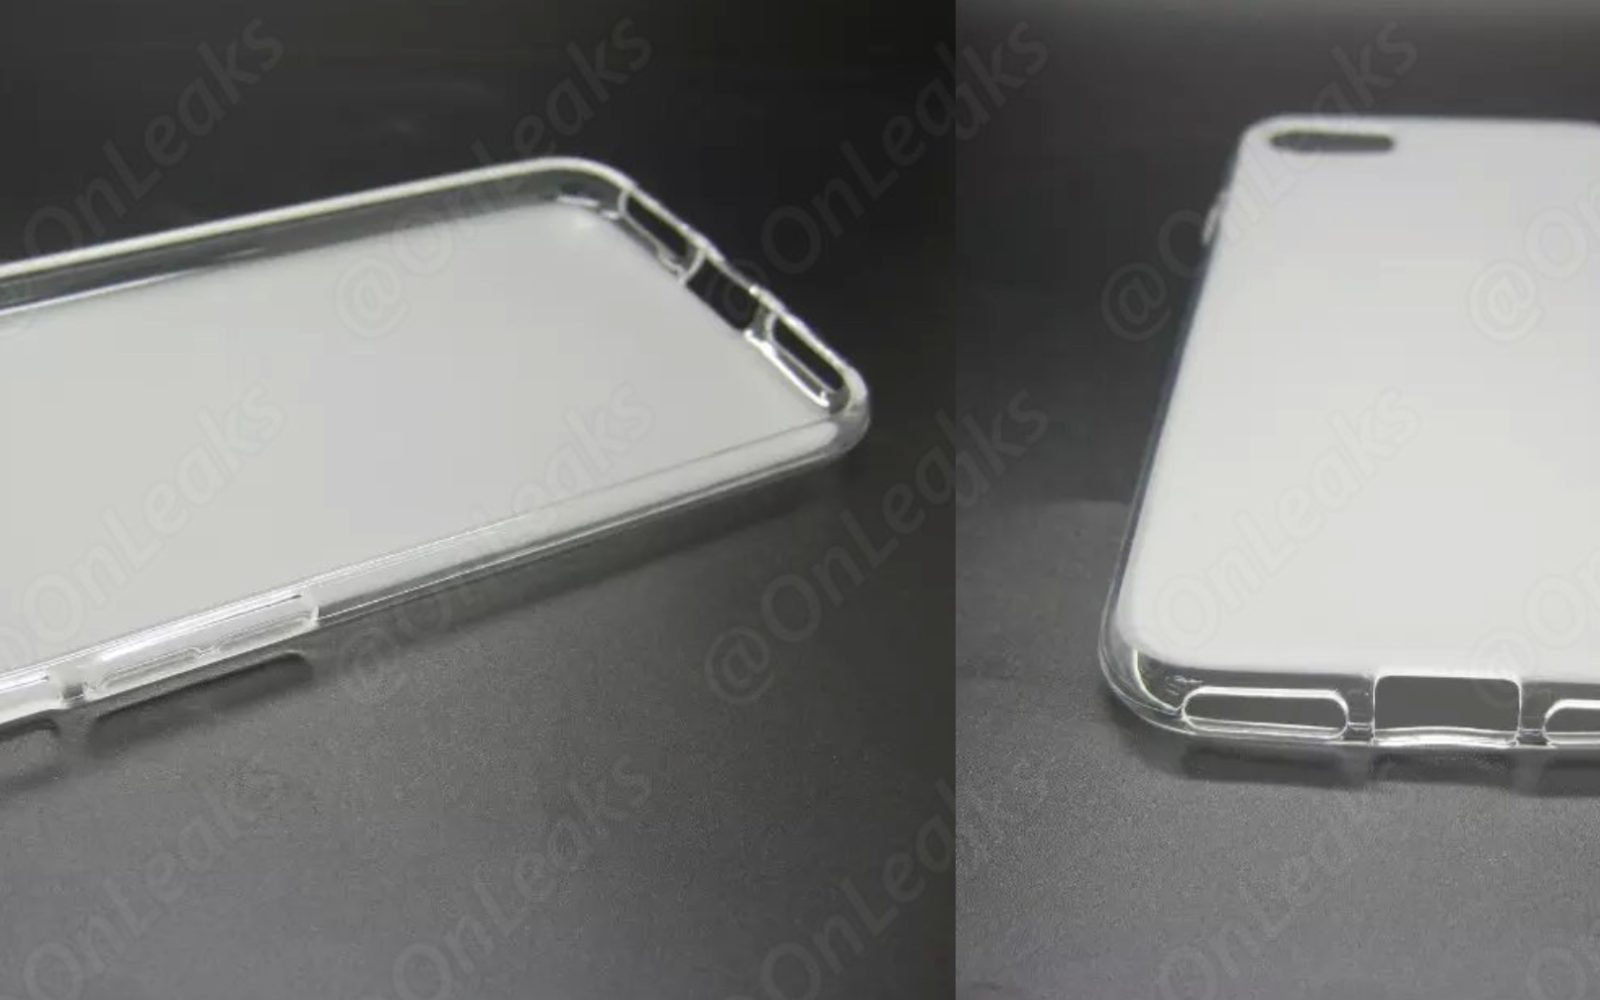 First purported iPhone 7 case leaks surface: resembles iPhone 6s, no headphone jack